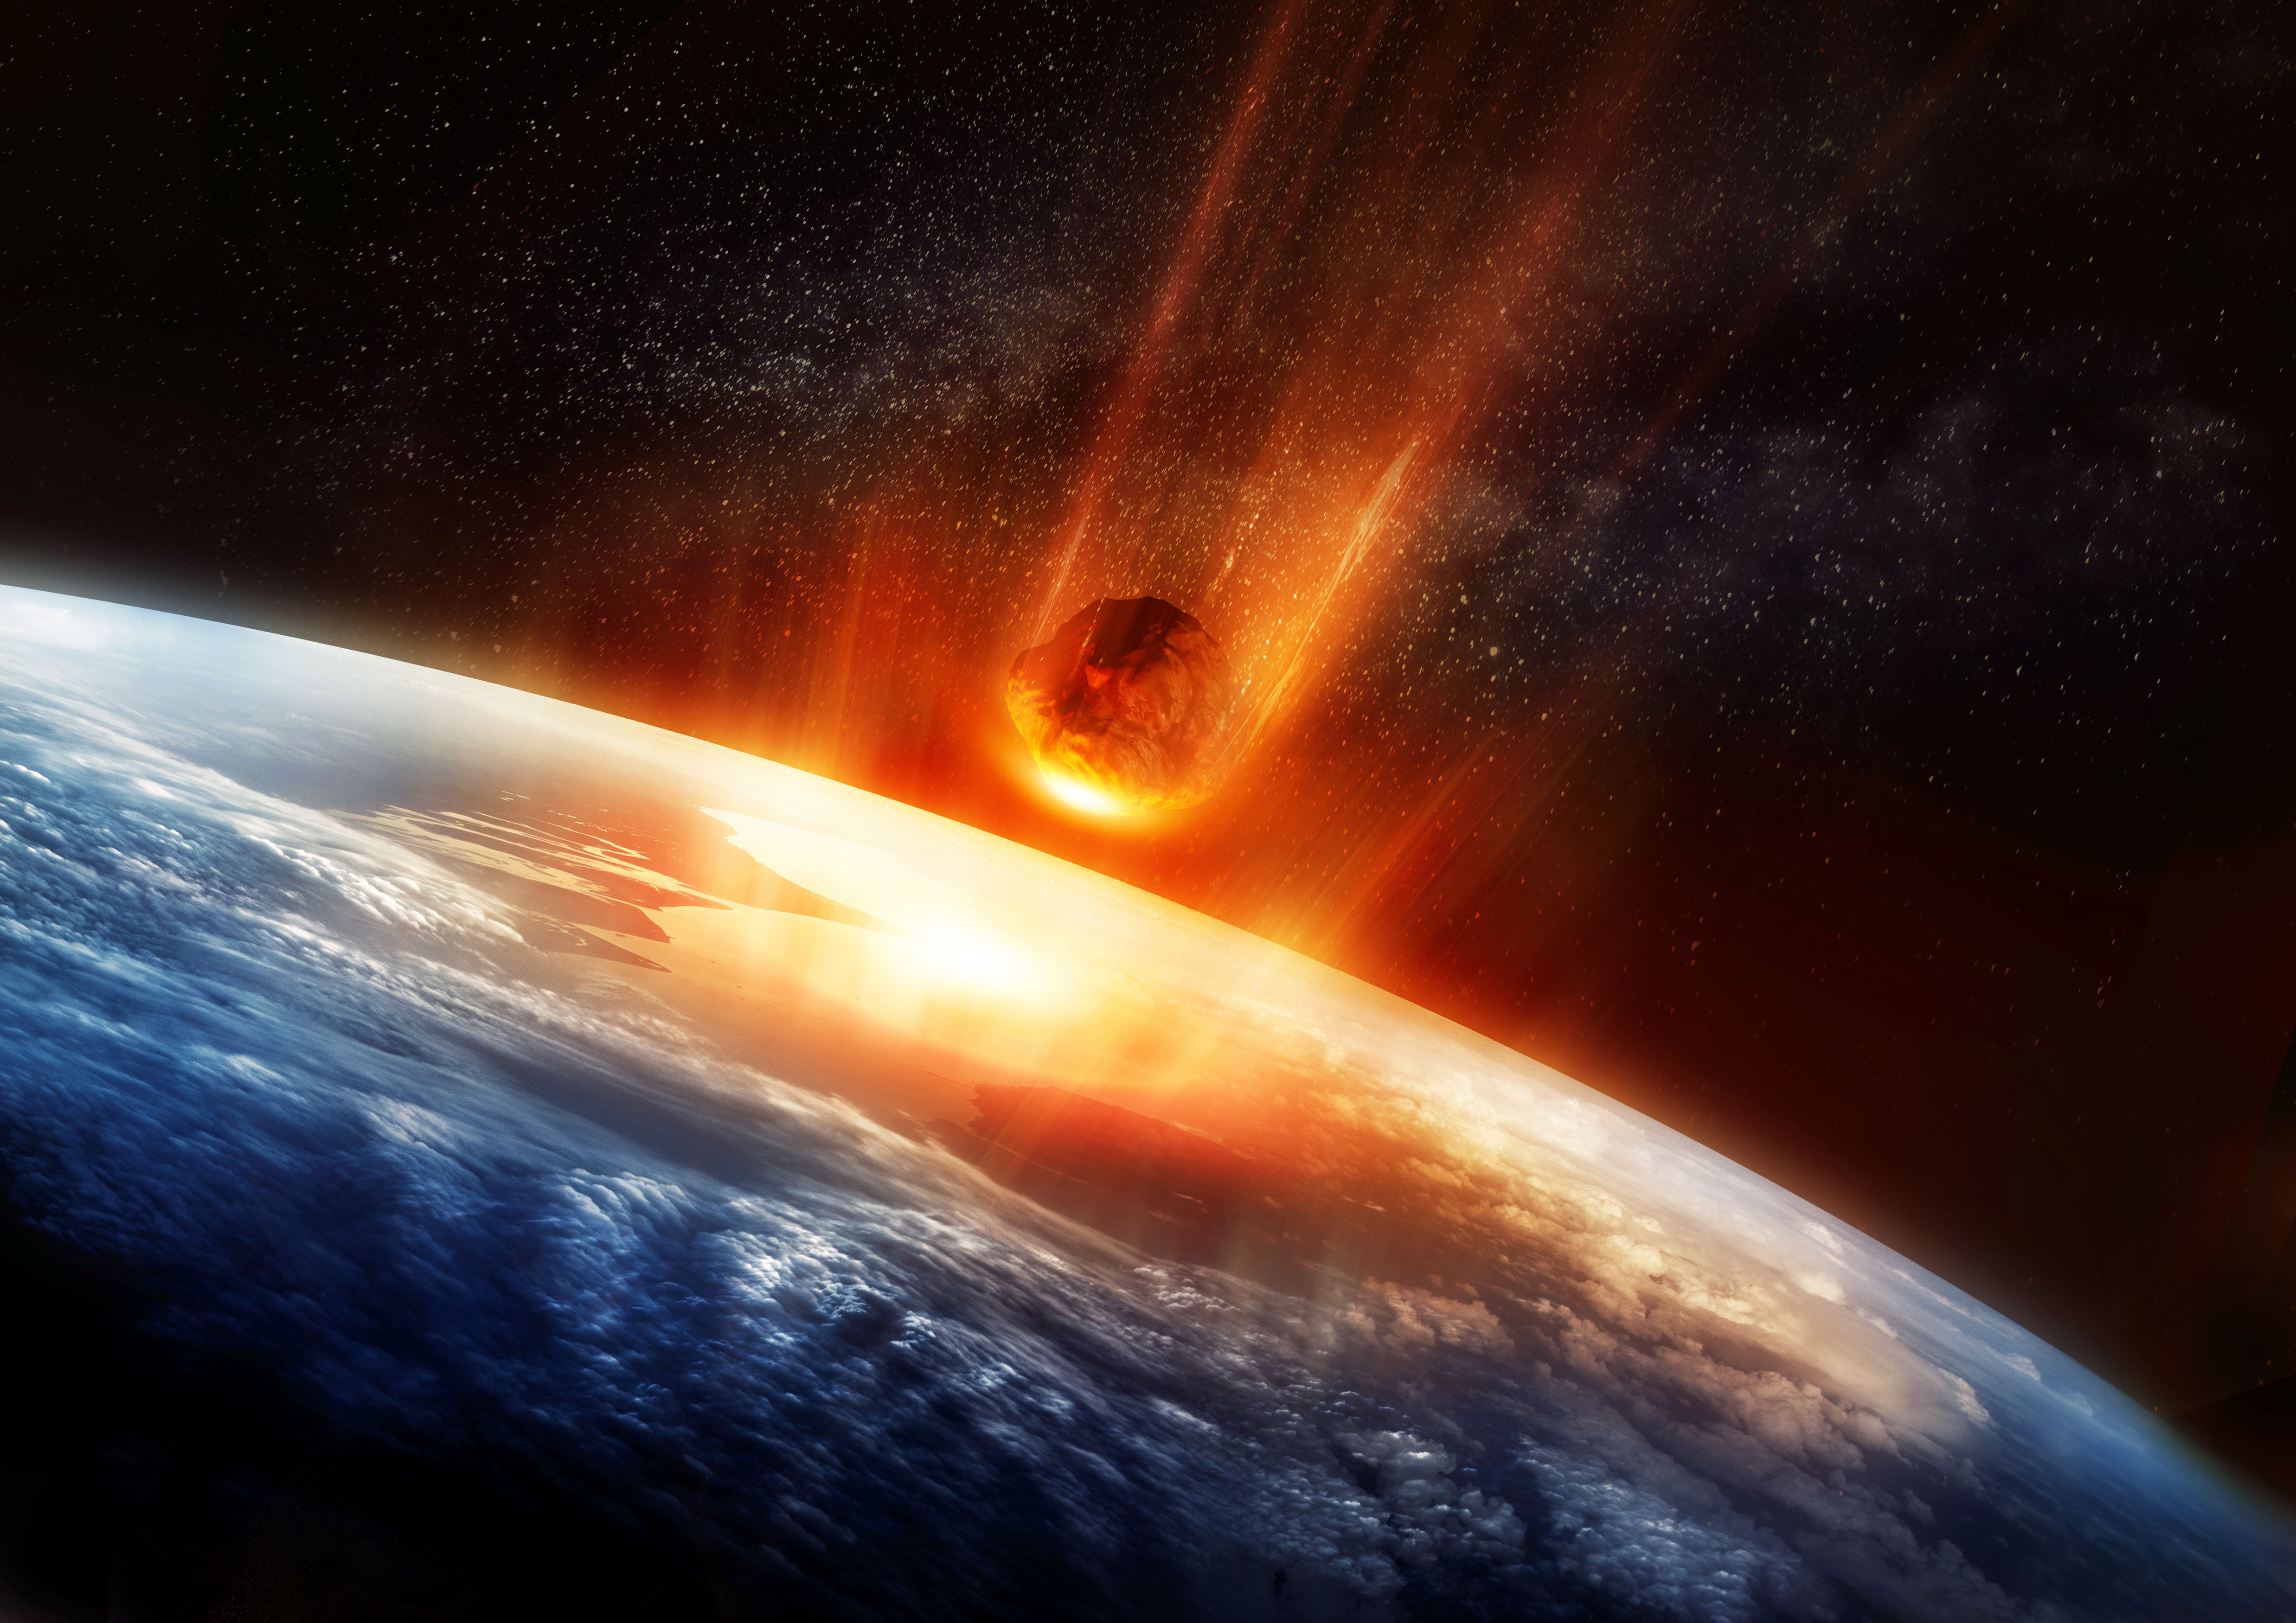 A large Meteor burning and glowing as it hits the earth's atmosphere. 3D illustration.jpg